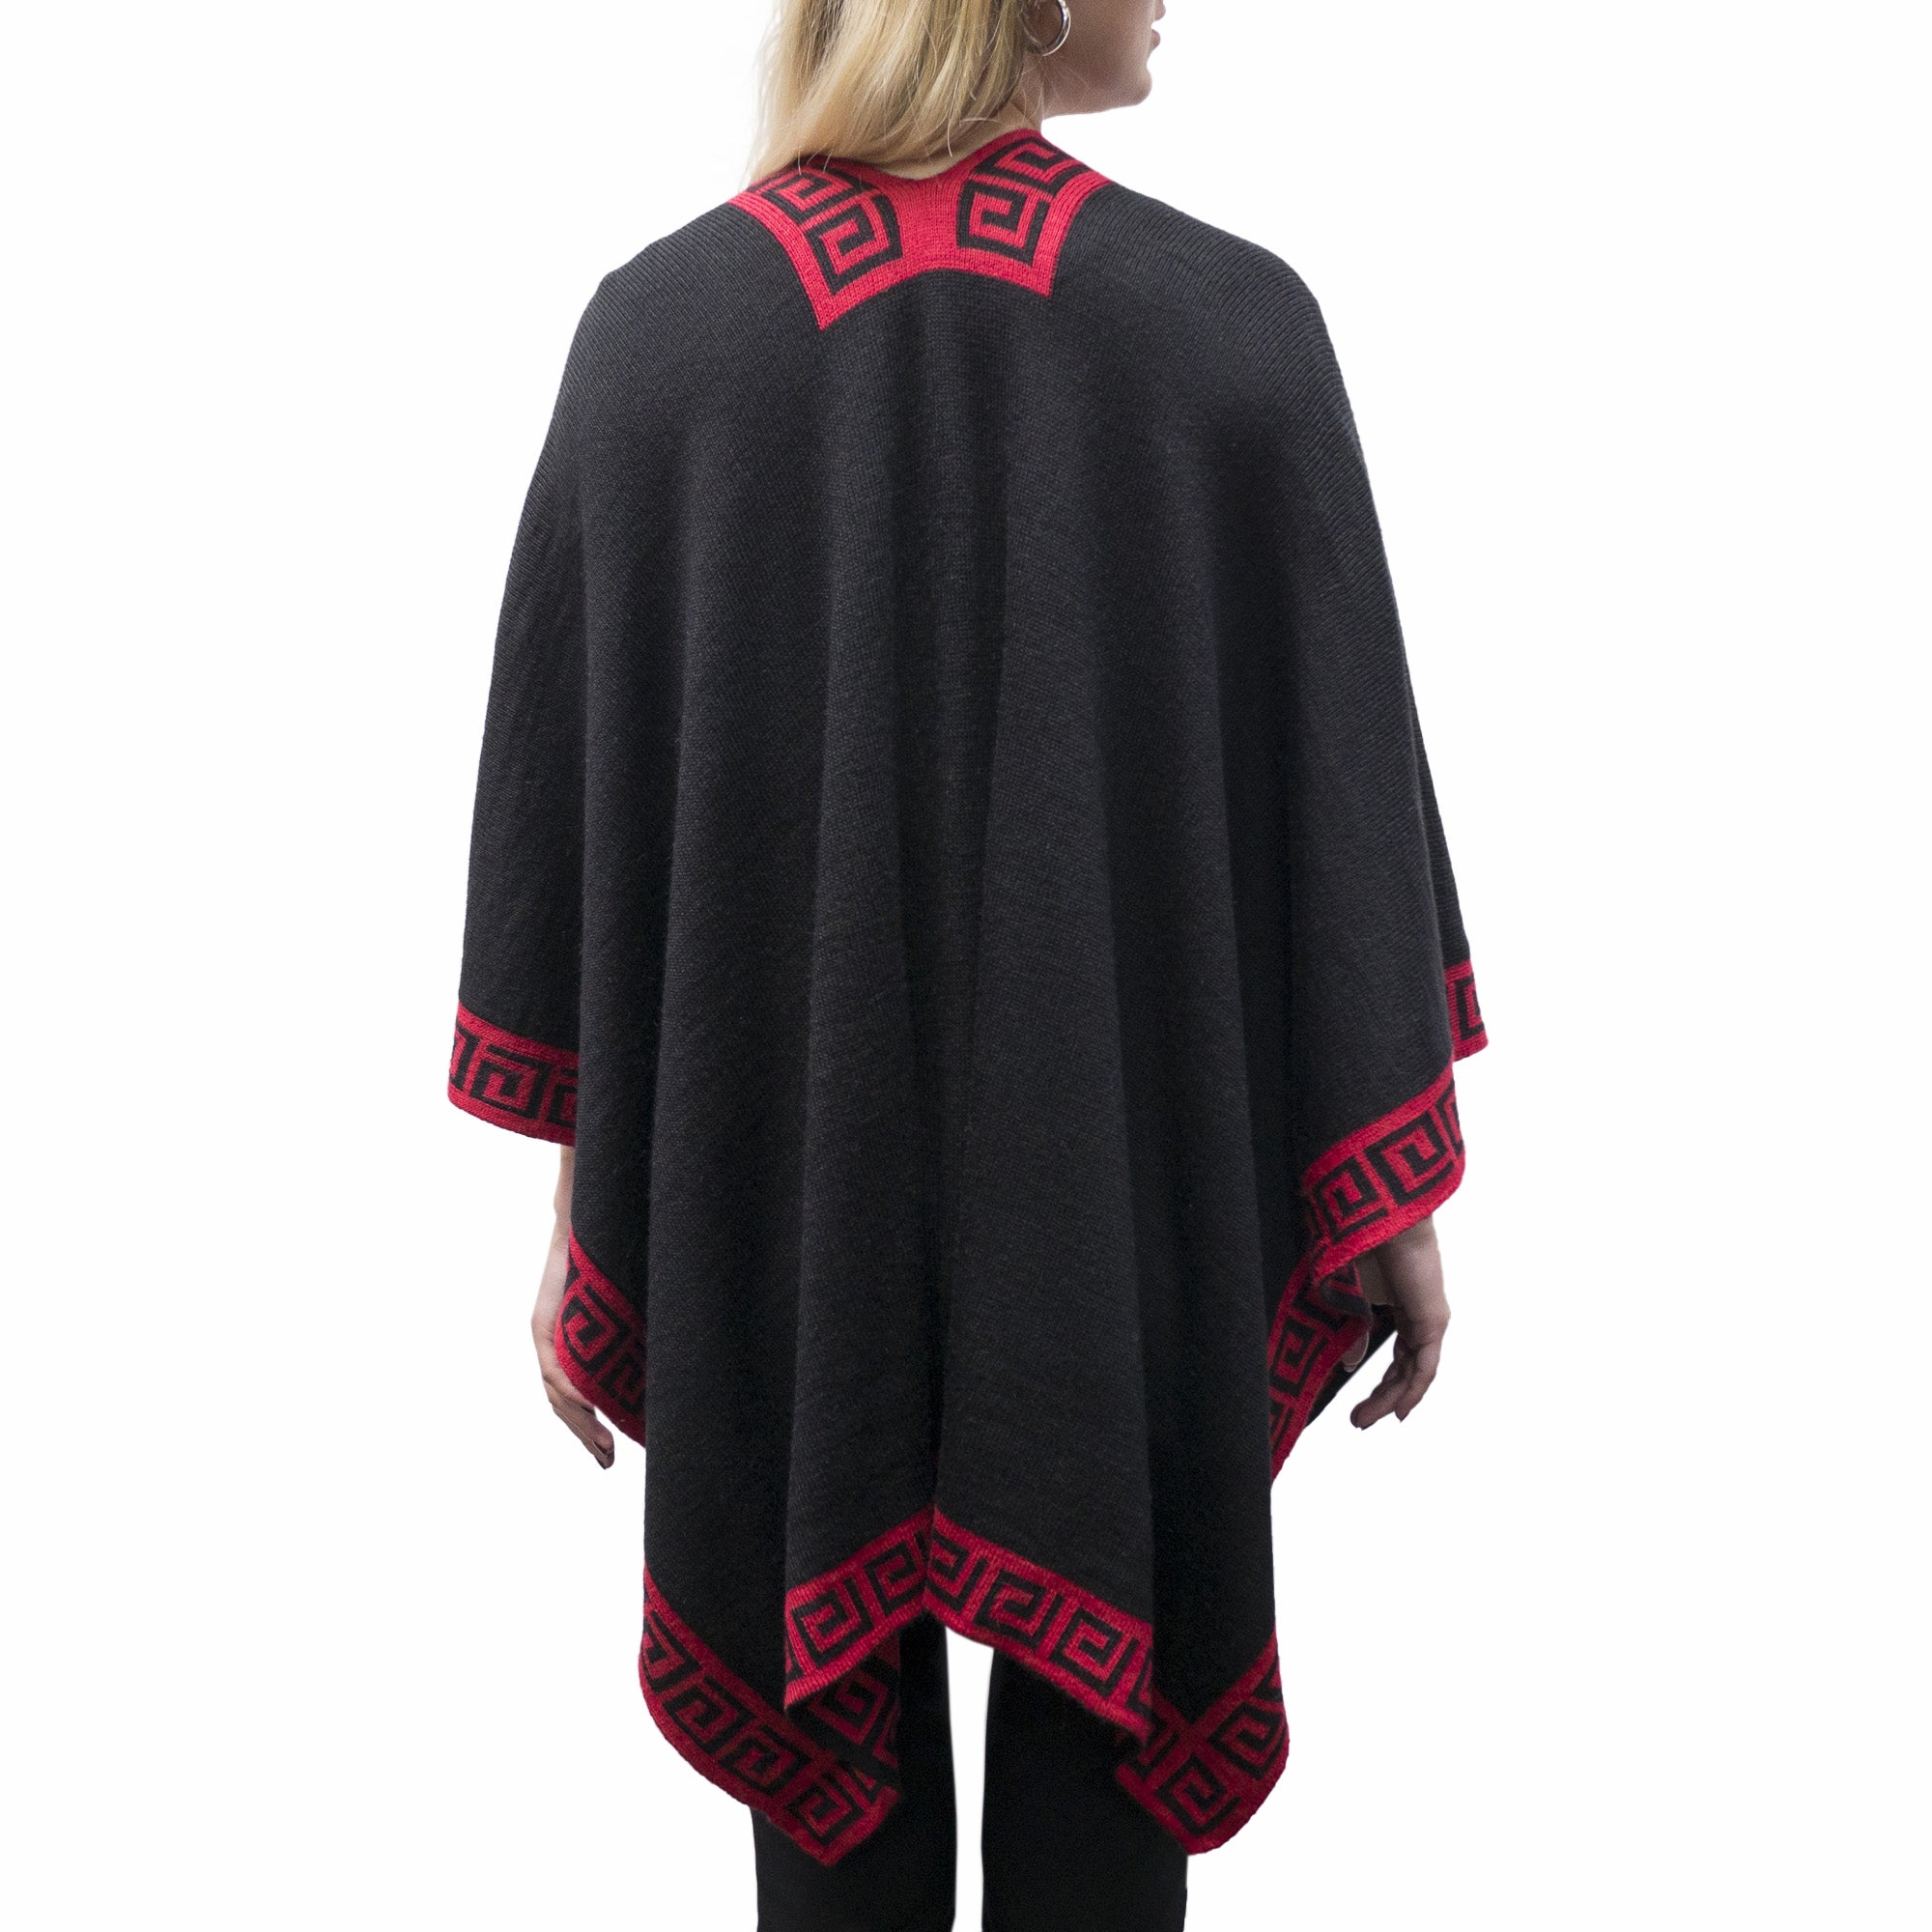 Black and Red Beautiful Reversible Handmade Women's Luxury Shawl